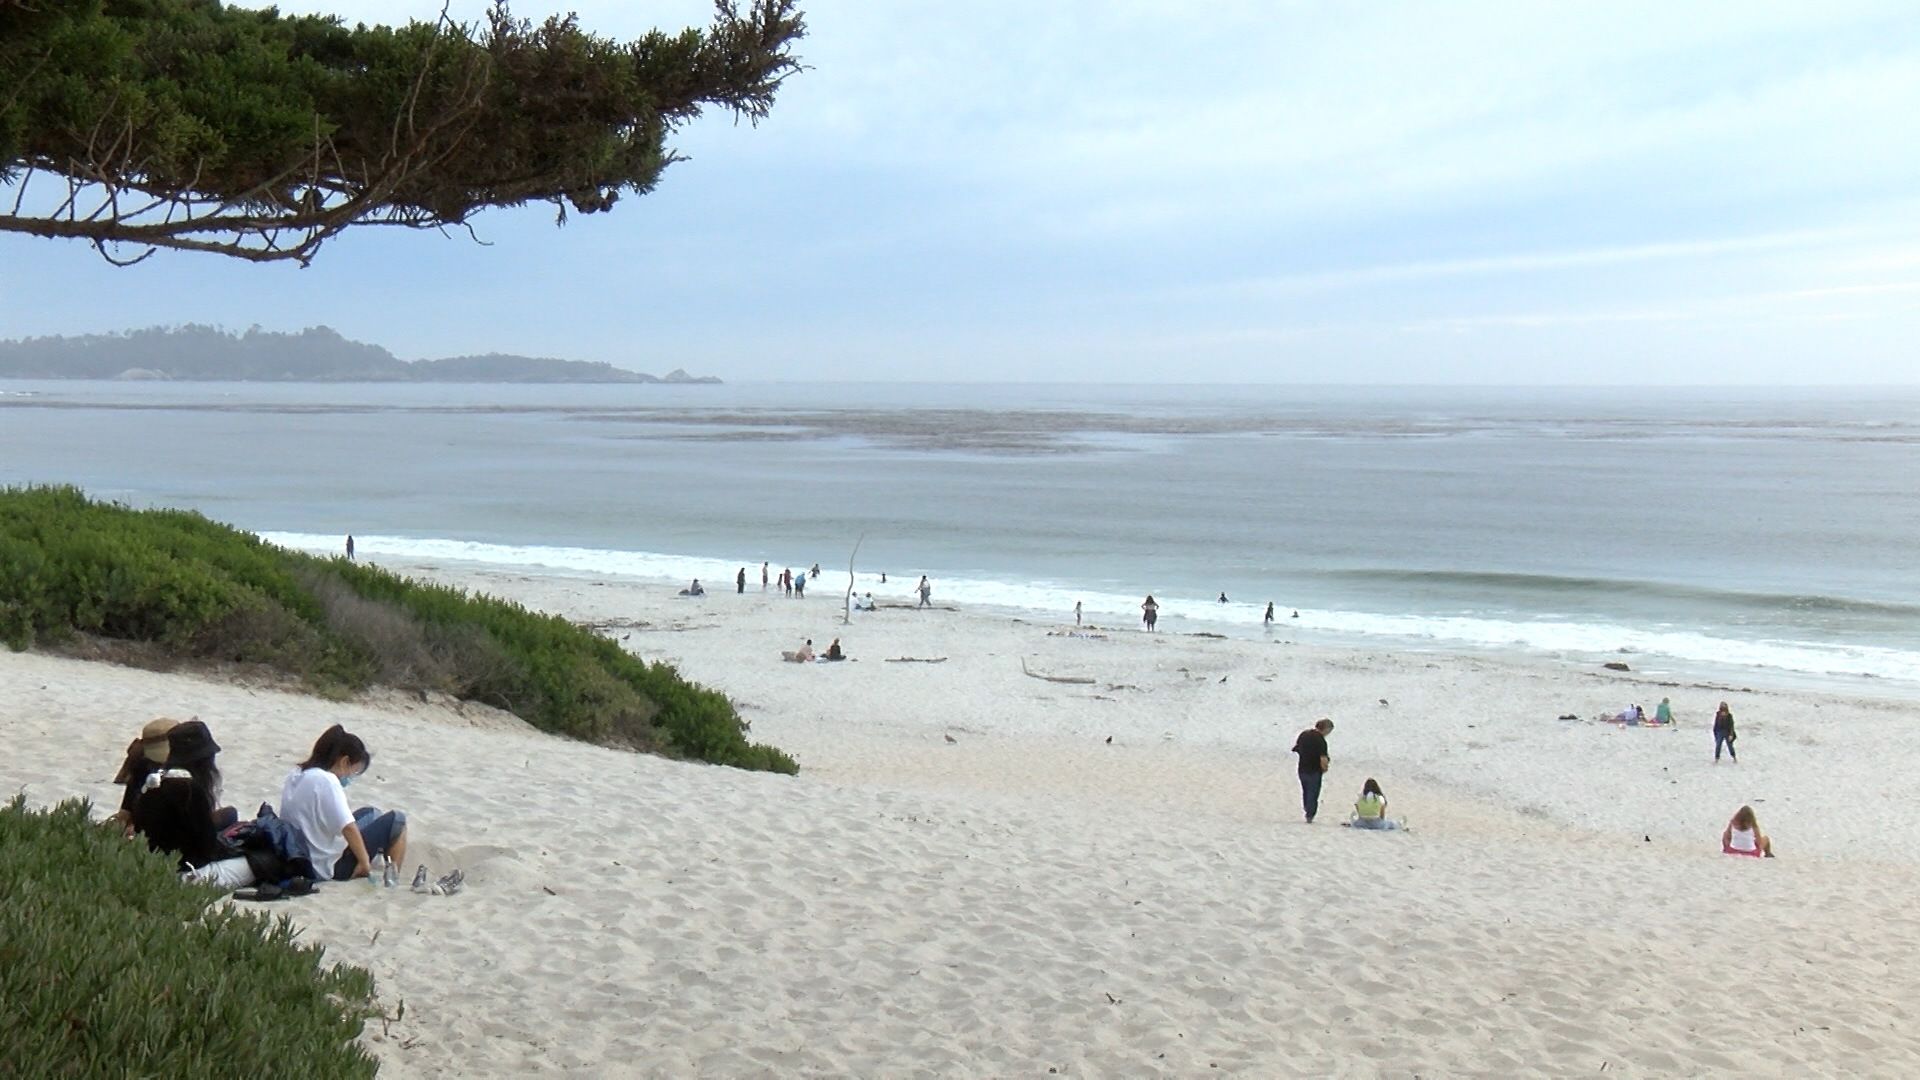 Carmel police to issue fines for beach use violations